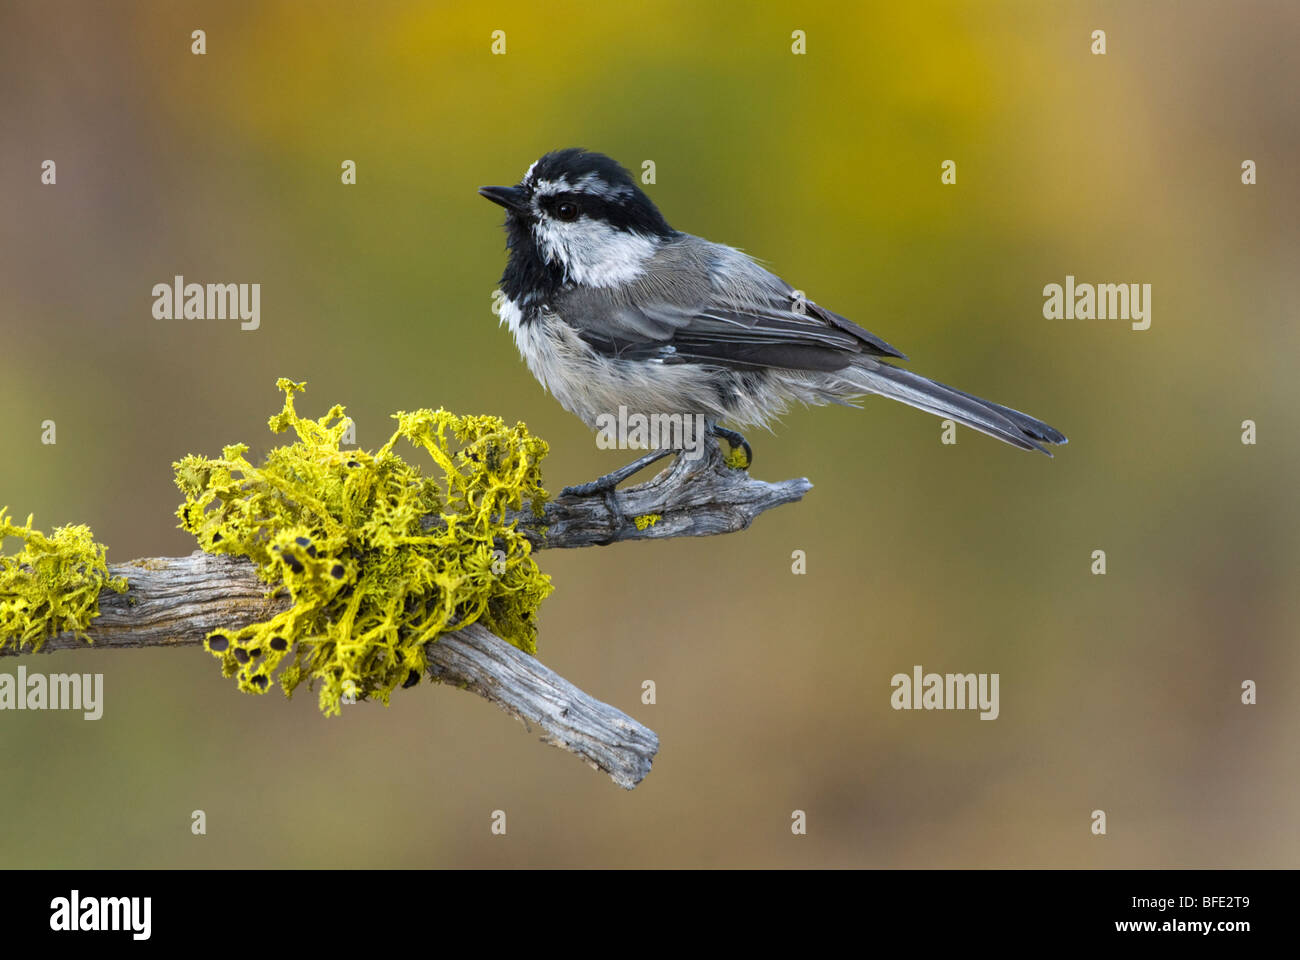 Mountain chickadee (Poecile gambeli) on perch in Deschutes National Forest, Oregon, USA - Stock Image